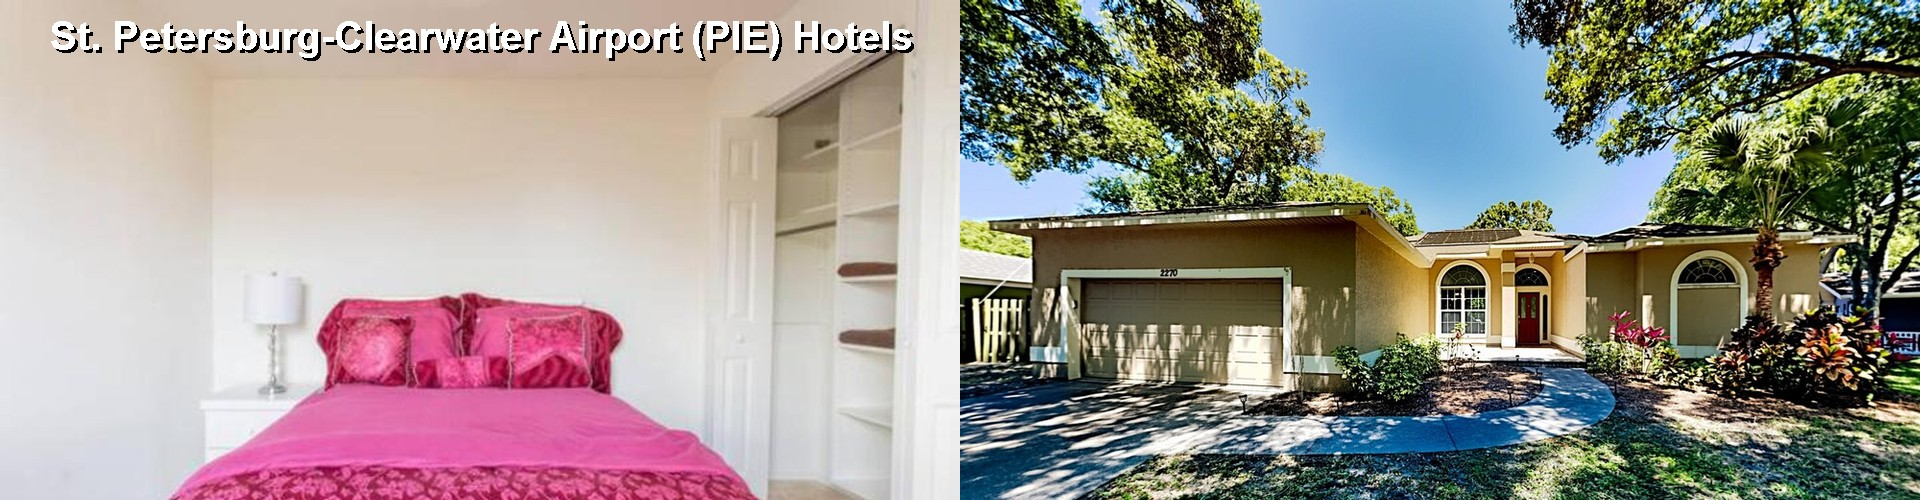 5 Best Hotels near St. Petersburg-Clearwater Airport (PIE)